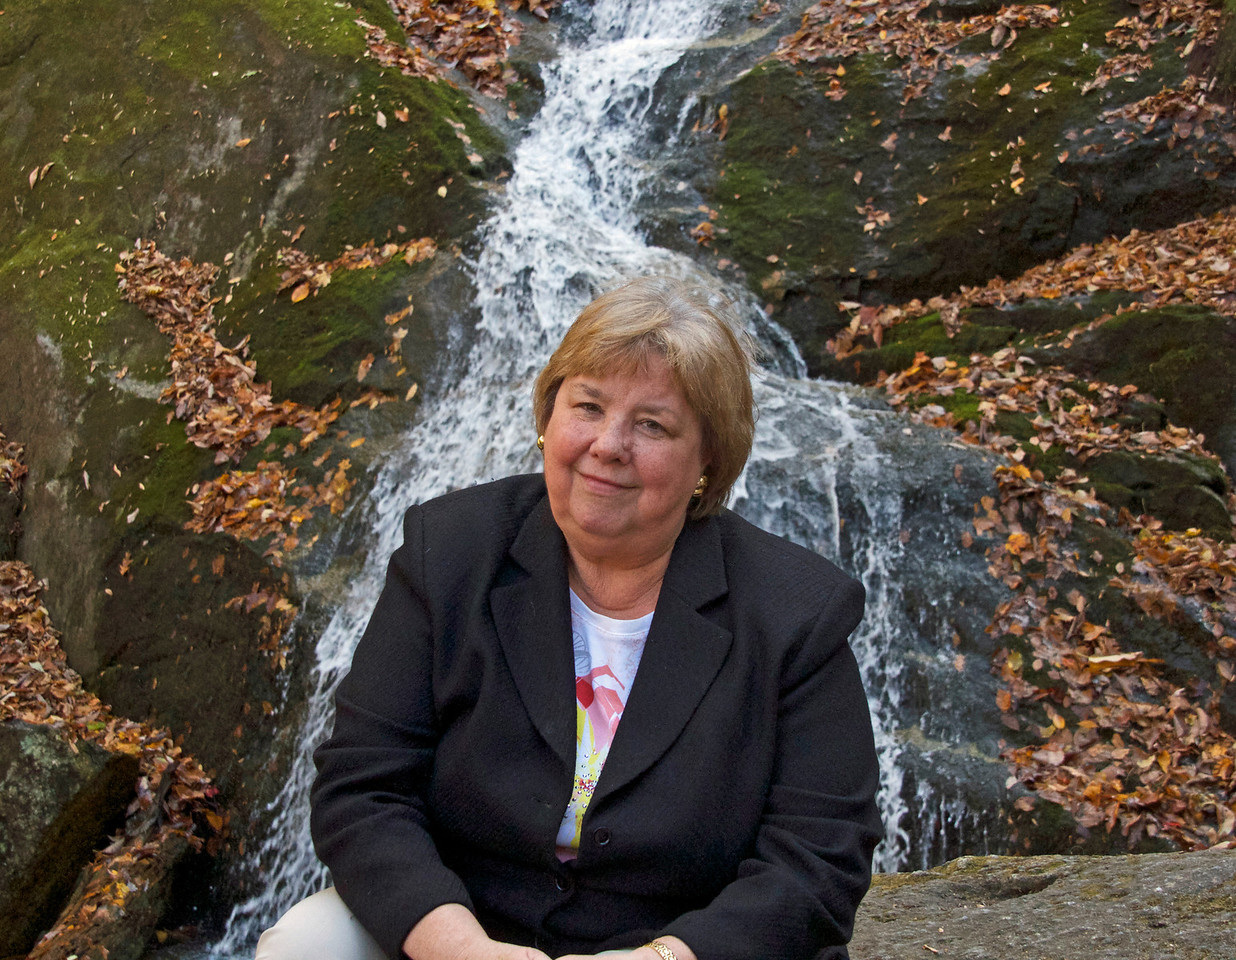 Martha at Crabtree Falls